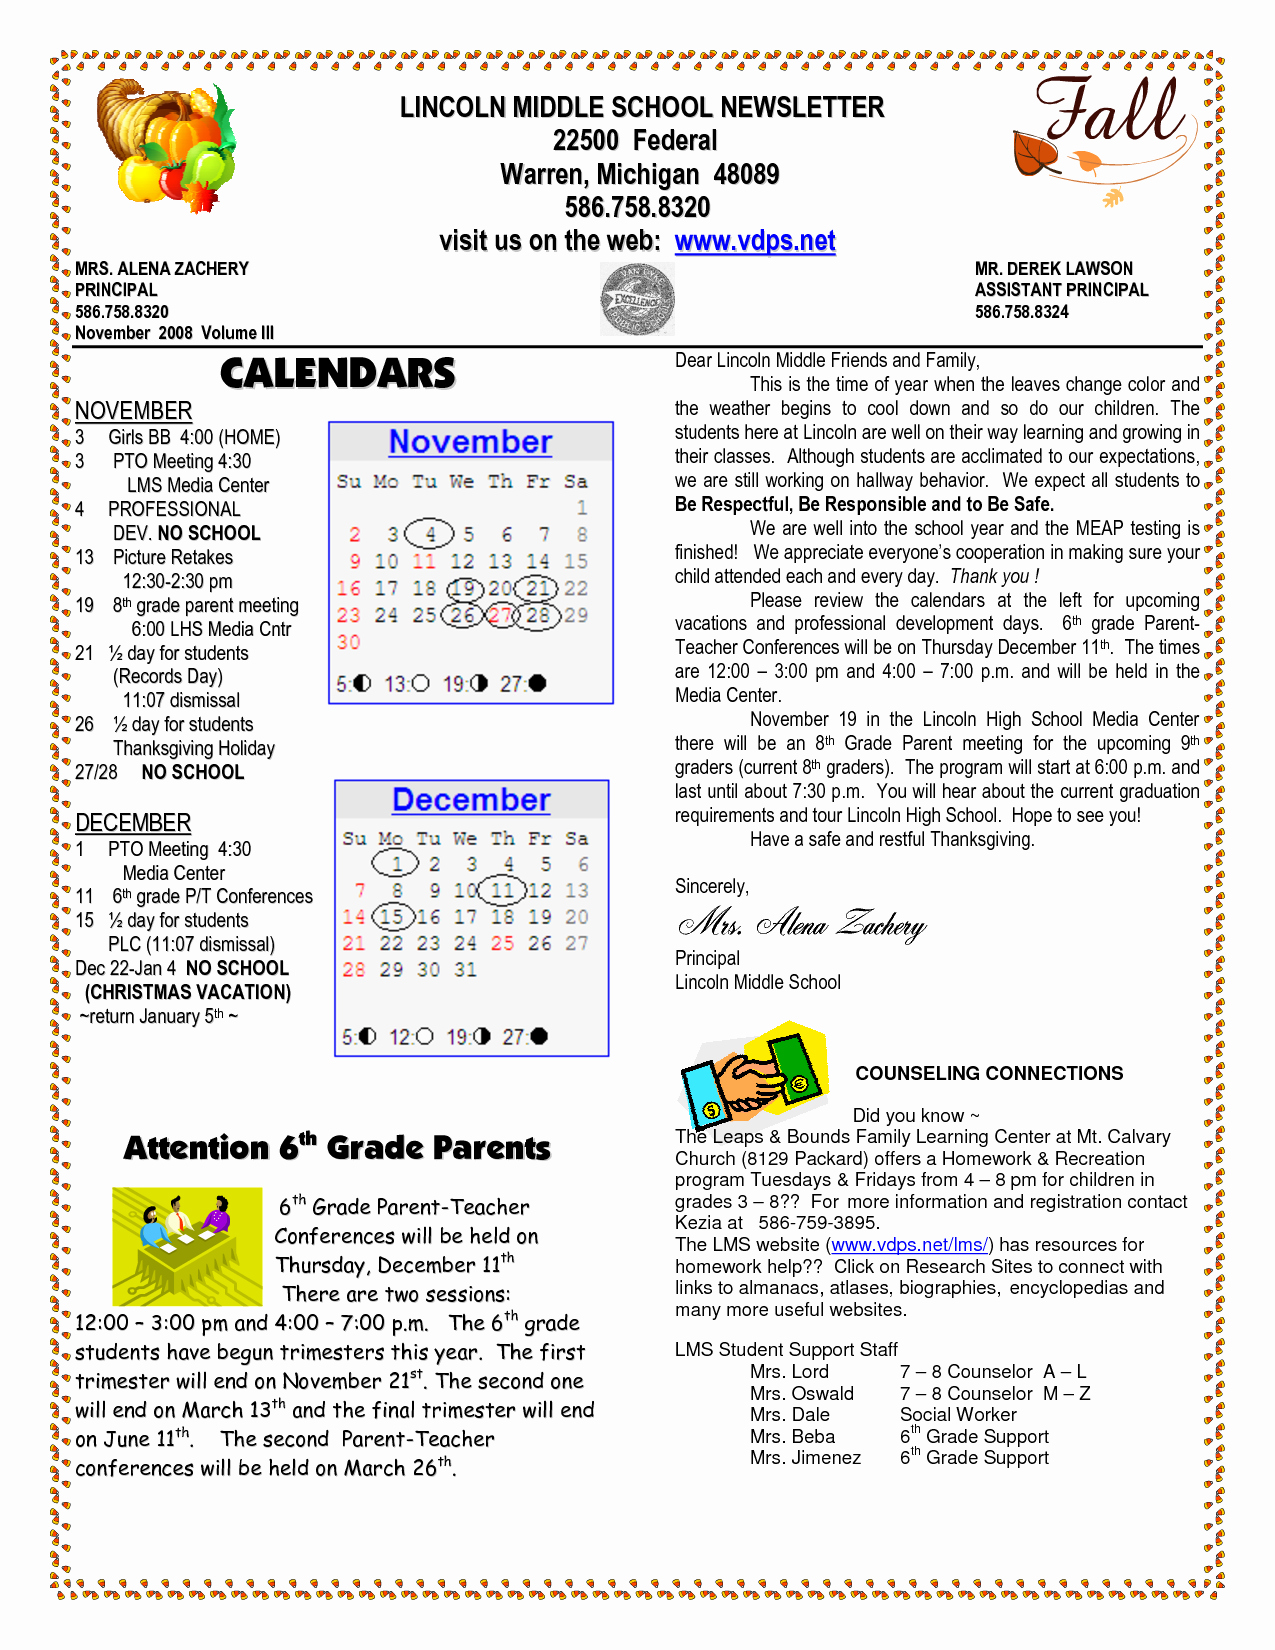 Elementary School Newsletter Template Inspirational School Newsletter Templates